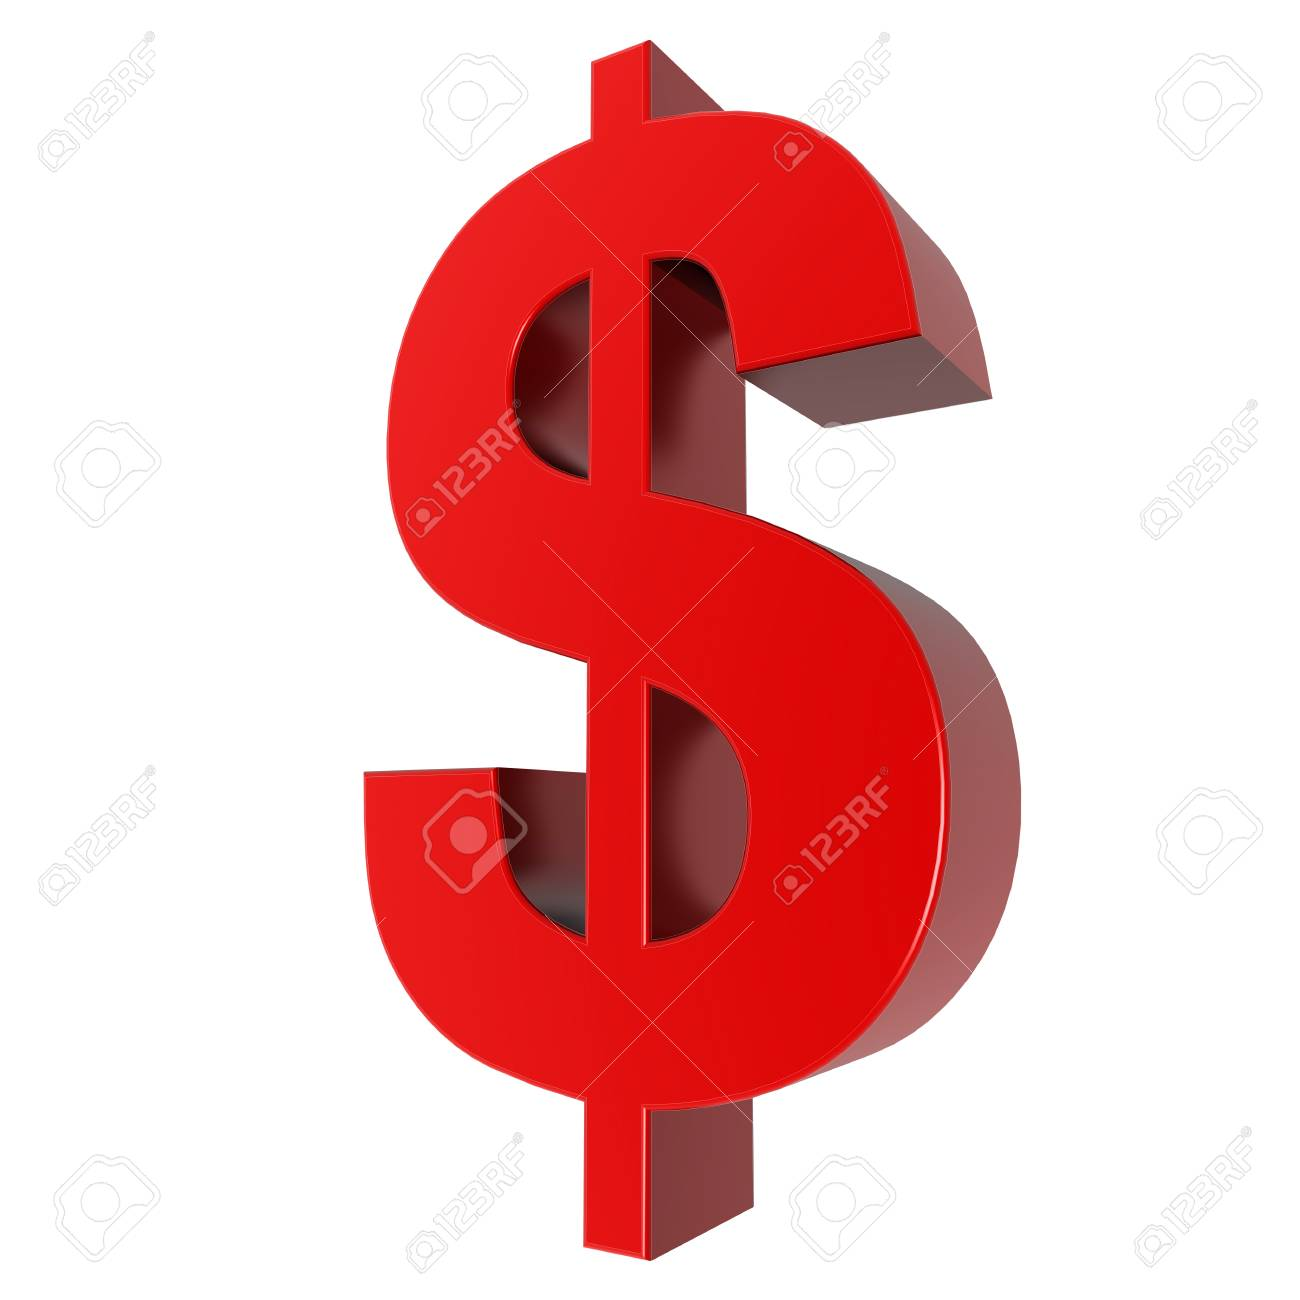 3d sign collection - dollar Stock Photo - 23525310